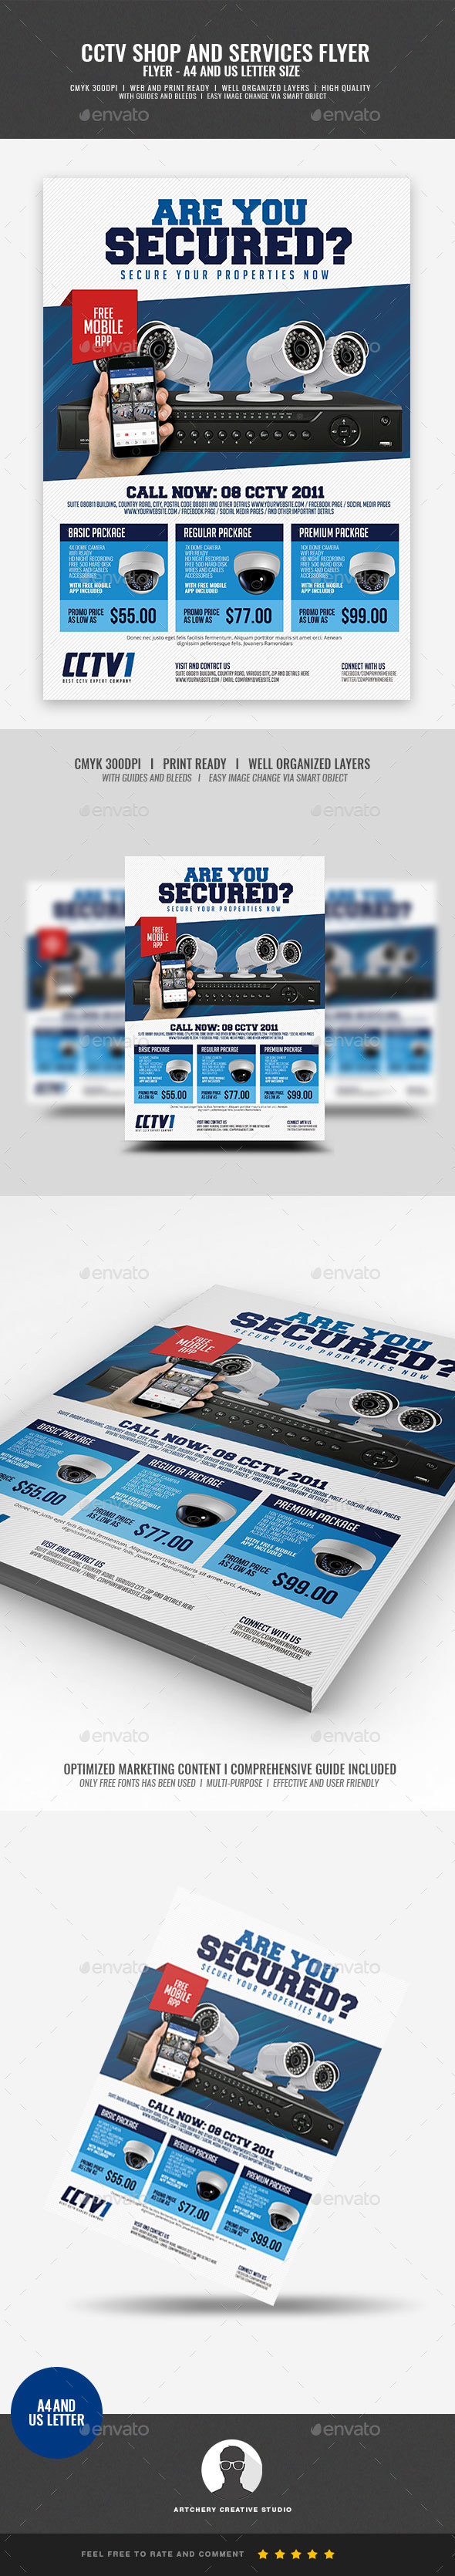 CCTV Package Flyer - Commerce Flyers